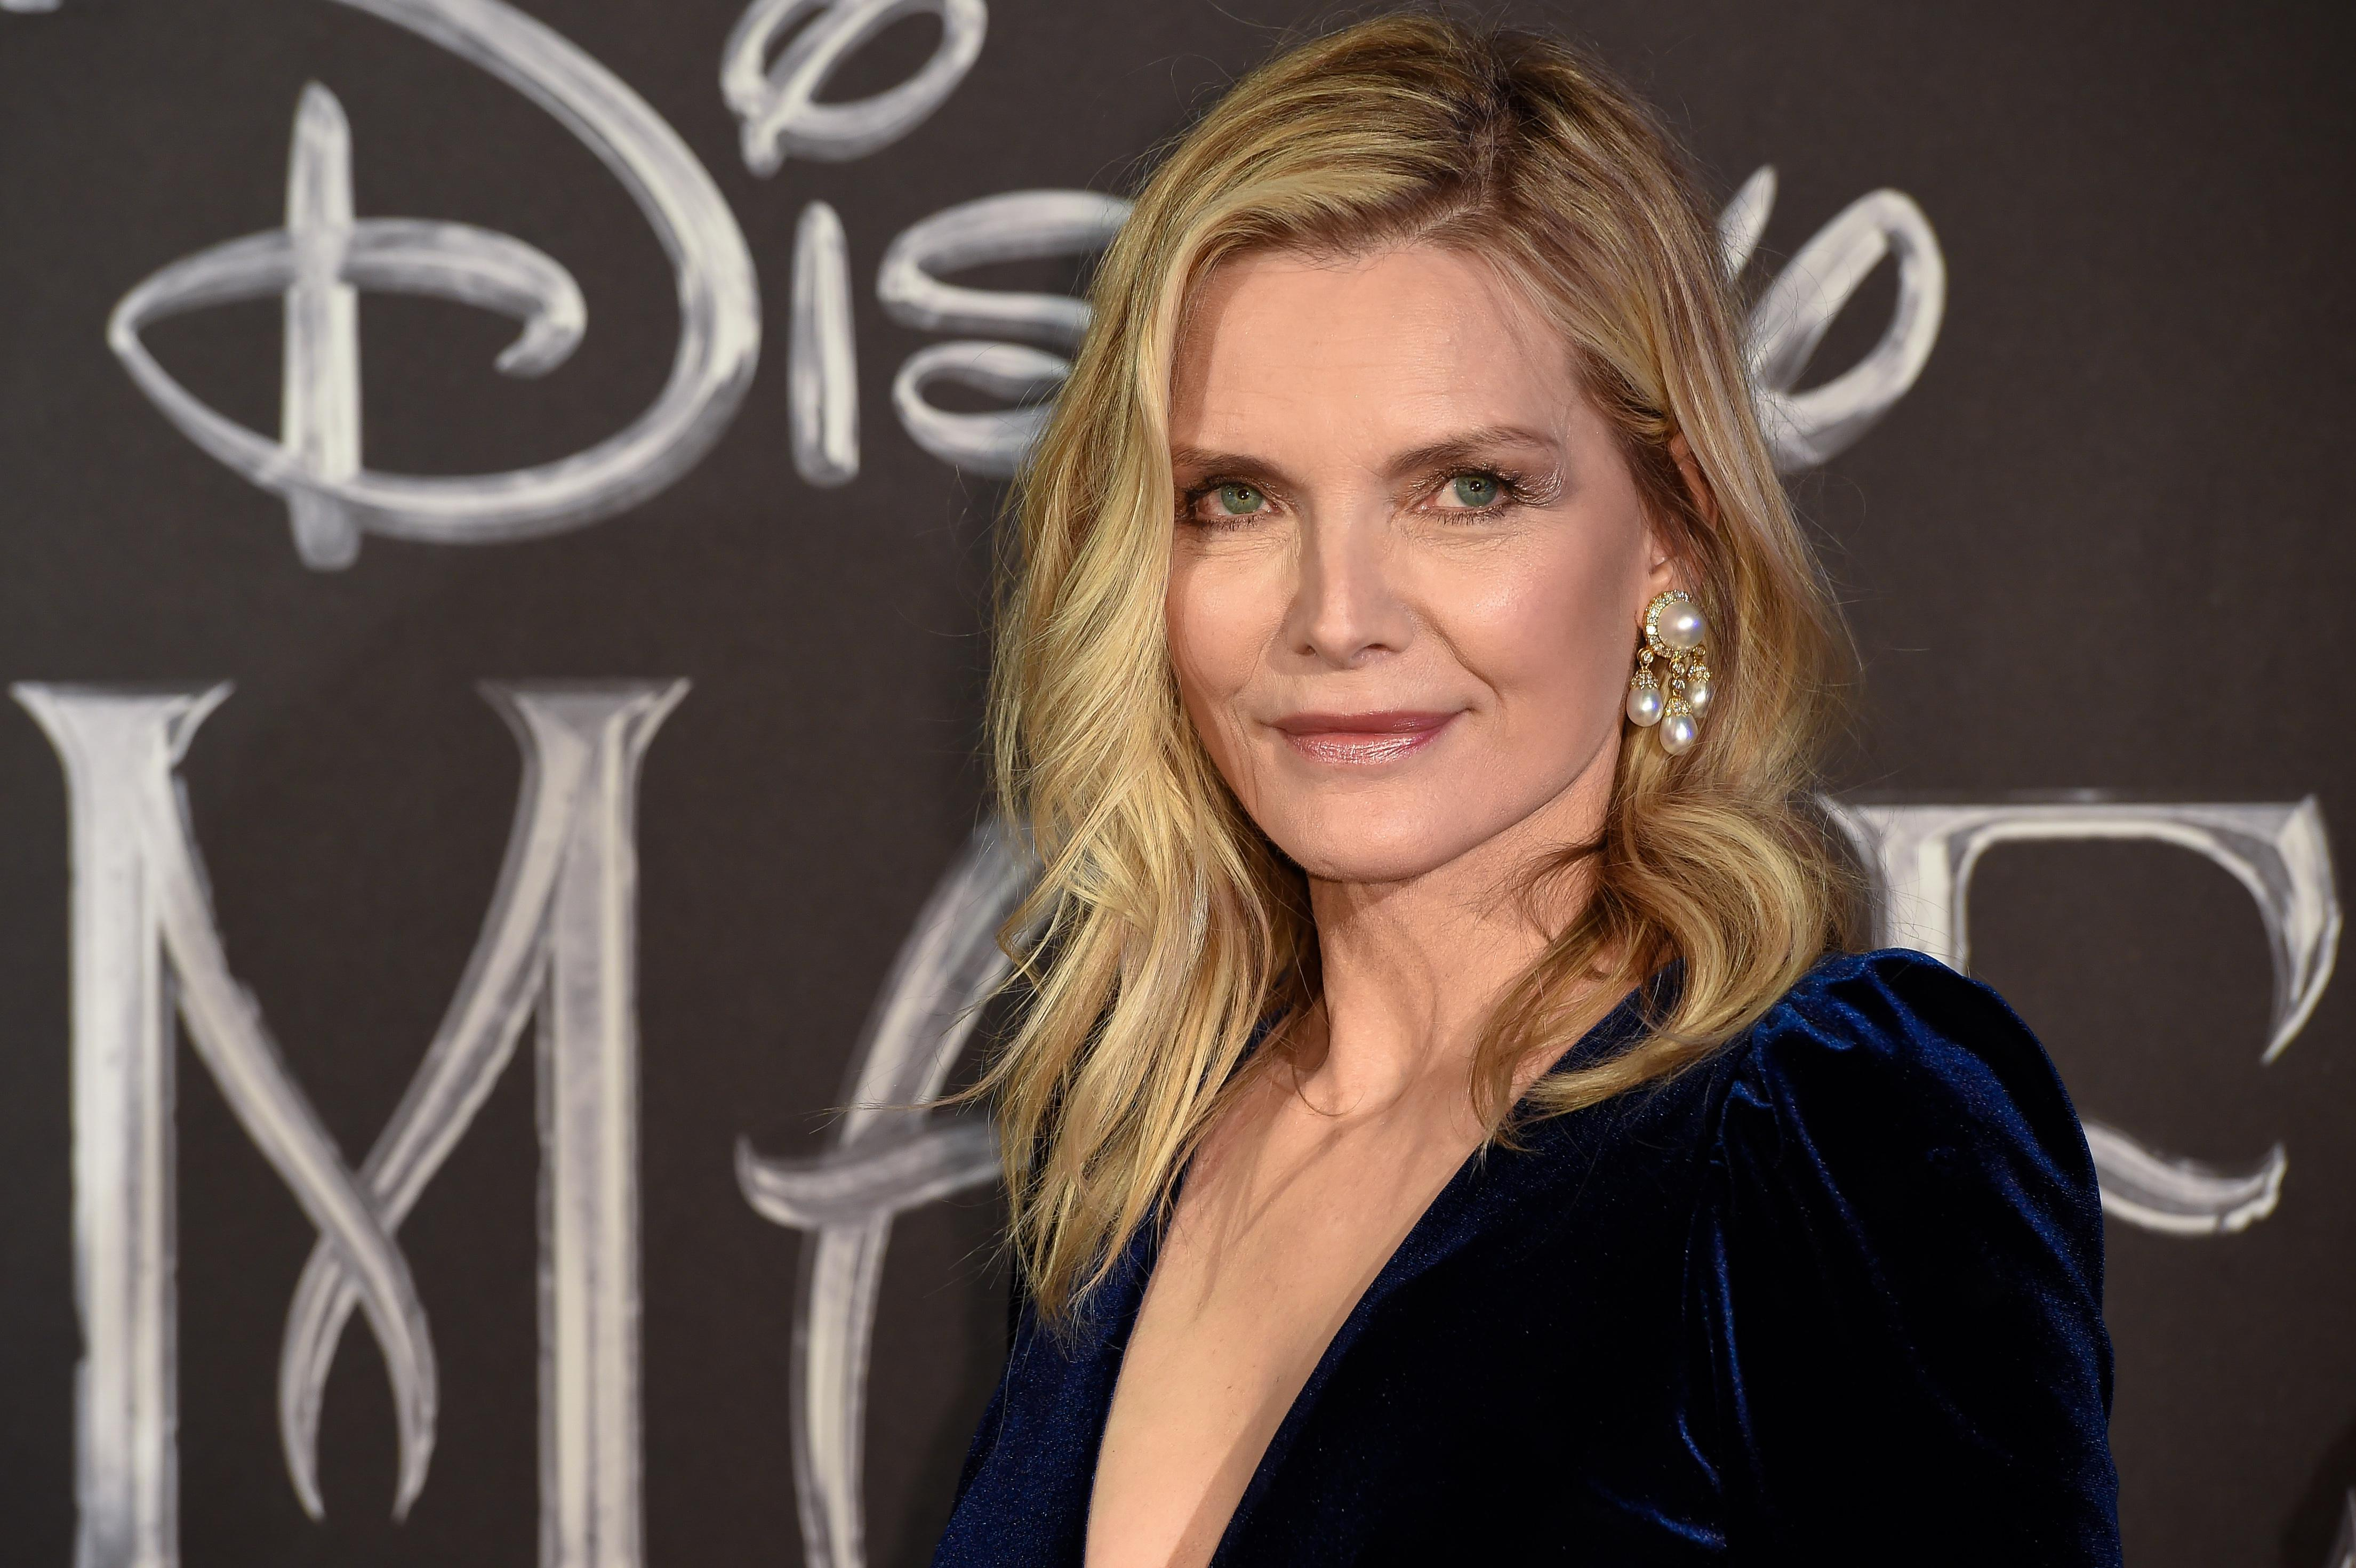 Michelle Pfeiffer launches her own